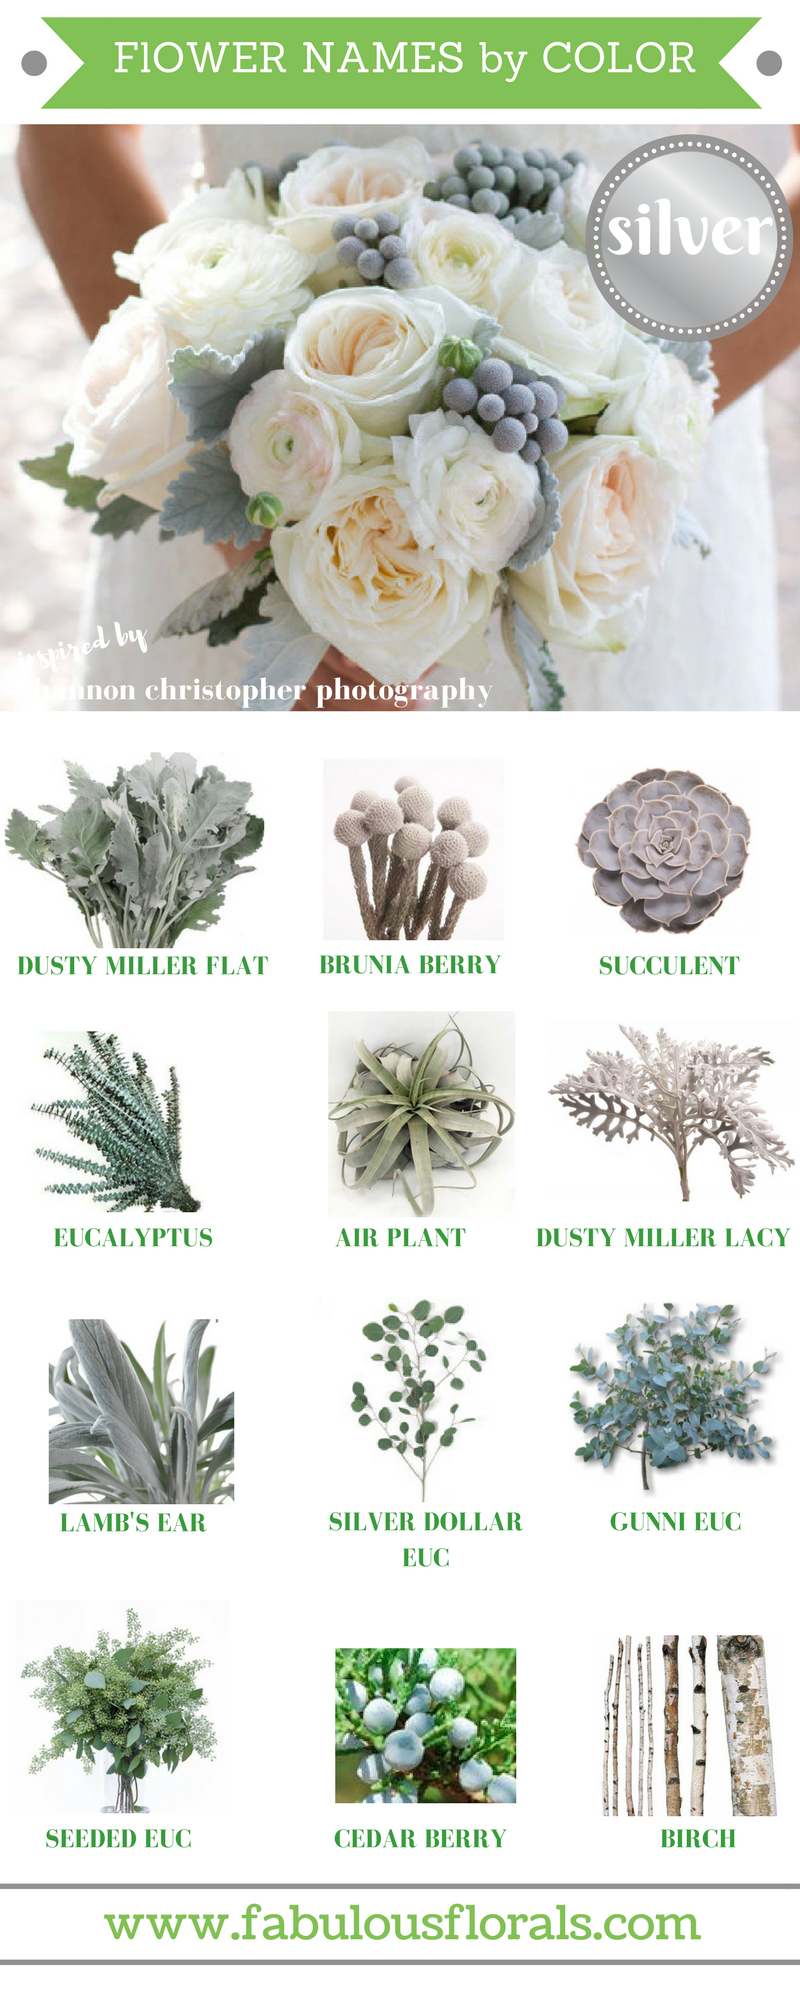 FLOWER NAMES BY COLOR! 2017 wedding trends! . Your #1 source for wholesale DIY wedding flowers! #silver #diyflowers #weddingflowers #silverwedding #weddingtrends #silverflowers #greywedding #greyflowers #flowernames #diywedding #weddingcolors #flowercolors